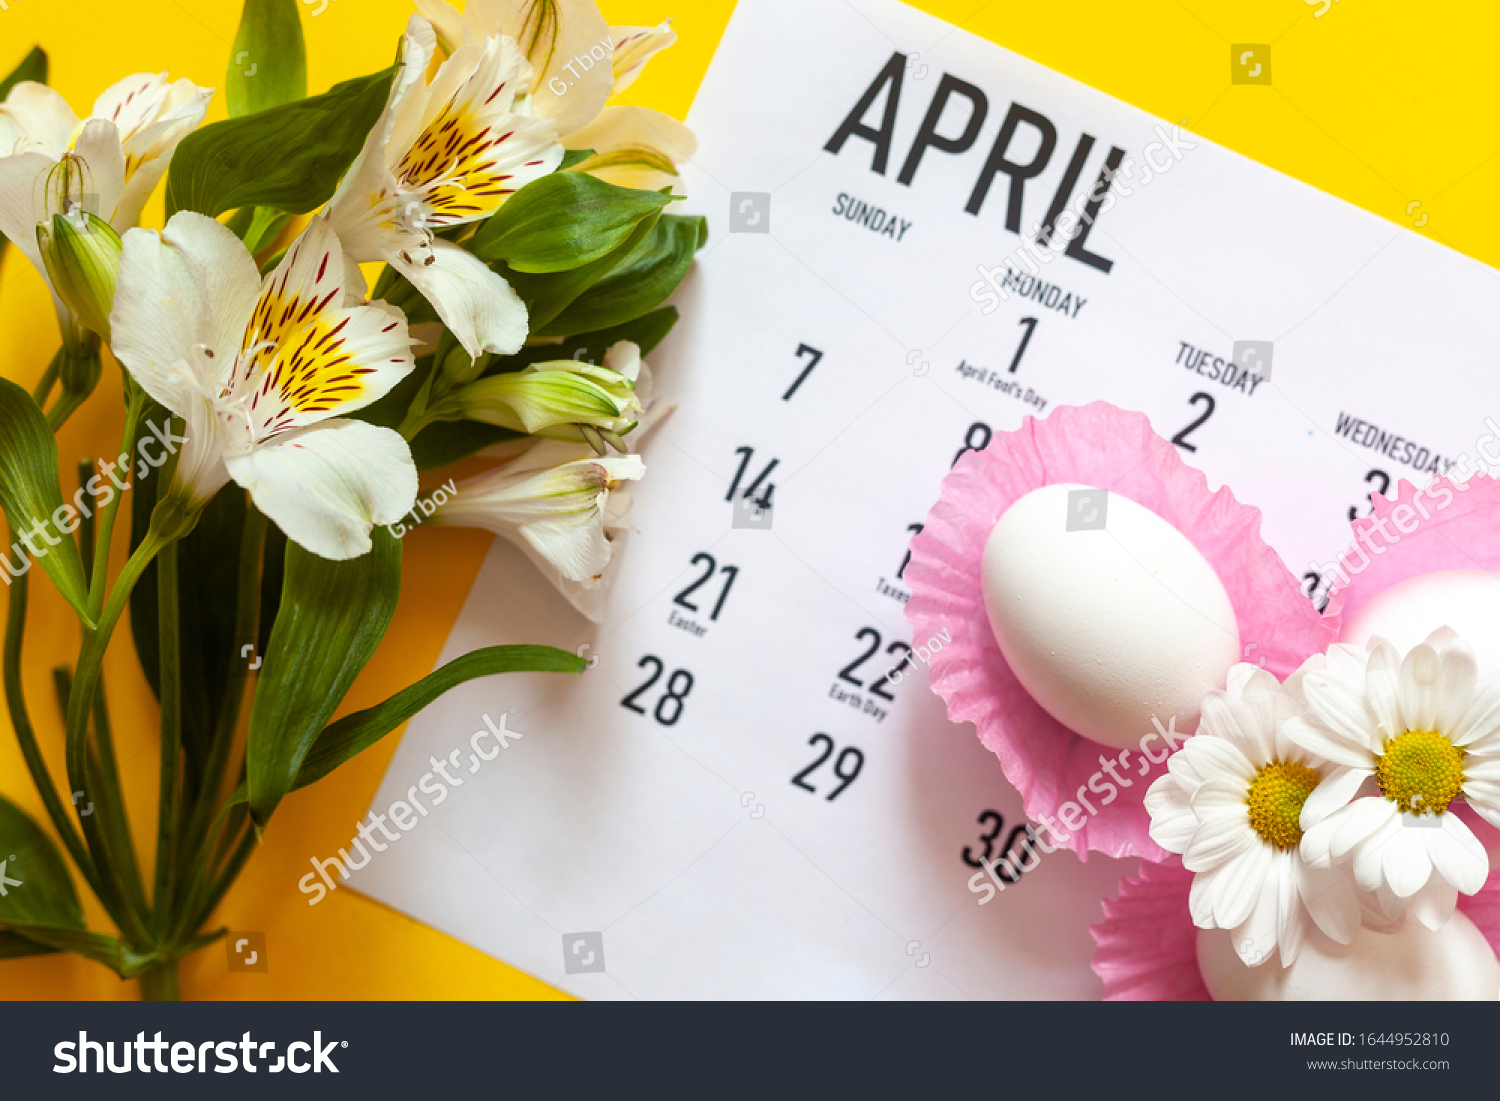 April 2020 calendar, cute pure white easter eggs and white flowers on yellow background. April 2020 monthly calendar. Top view. View from above. Monthly April calendar #1644952810